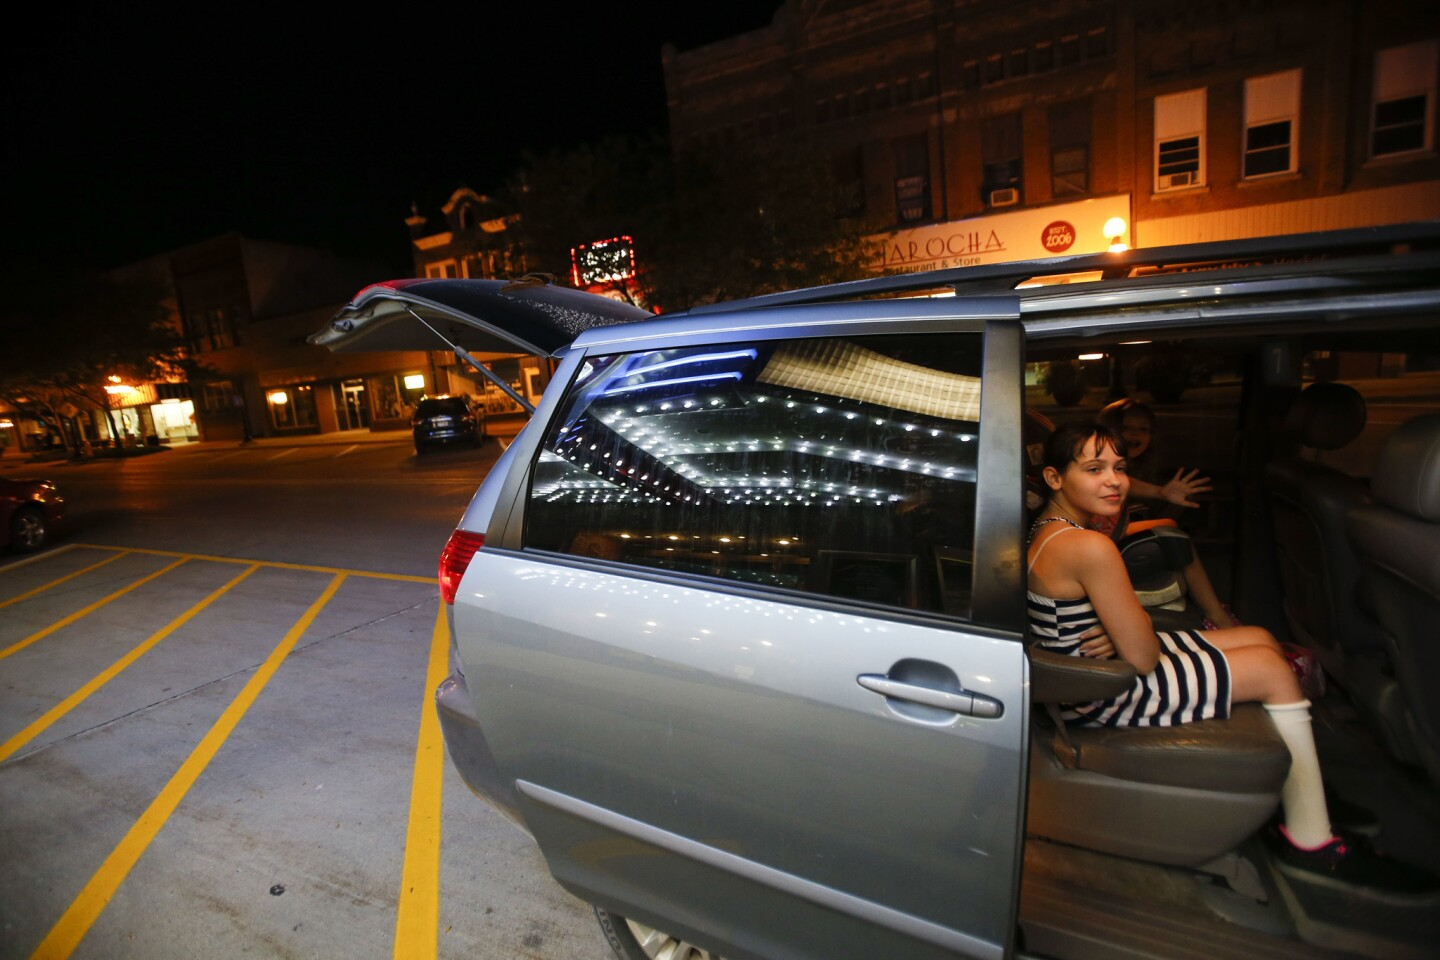 """Alaina Spaulding, 11, of Webster City prepares to leave the theater after seeing """"Mamma Mia 2"""" with her mother at the Webster Theater in Webster City, Iowa. Community members rallied around the theater to save it after it closed in 2013."""